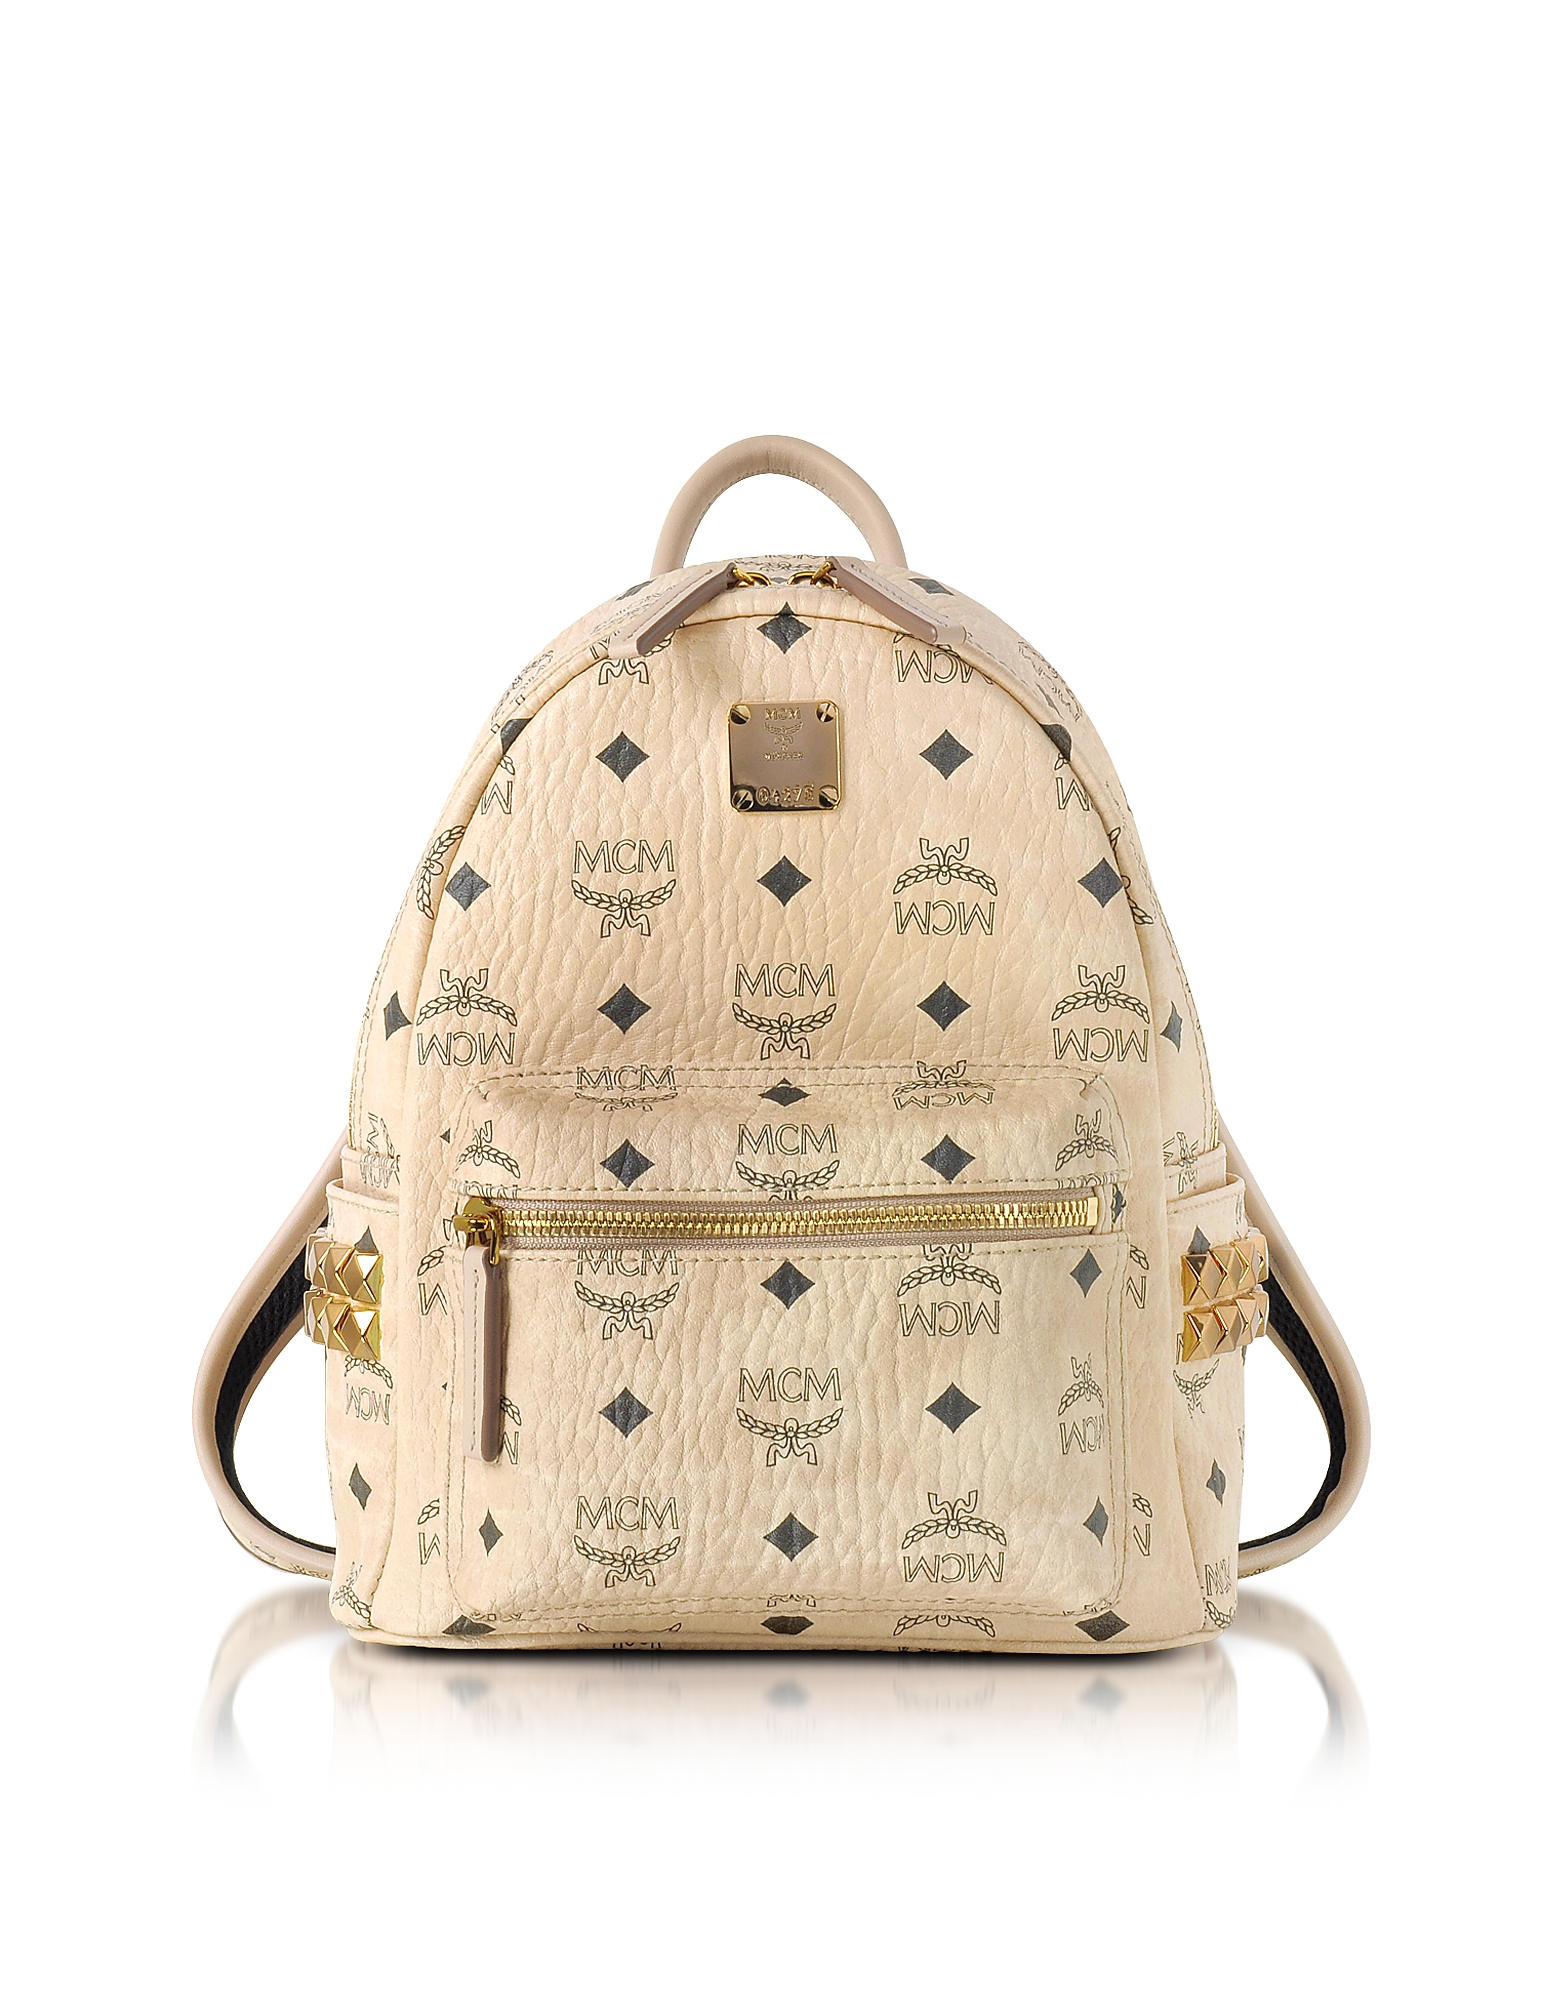 MCM Handbags, Beige Mini Stark Backpack